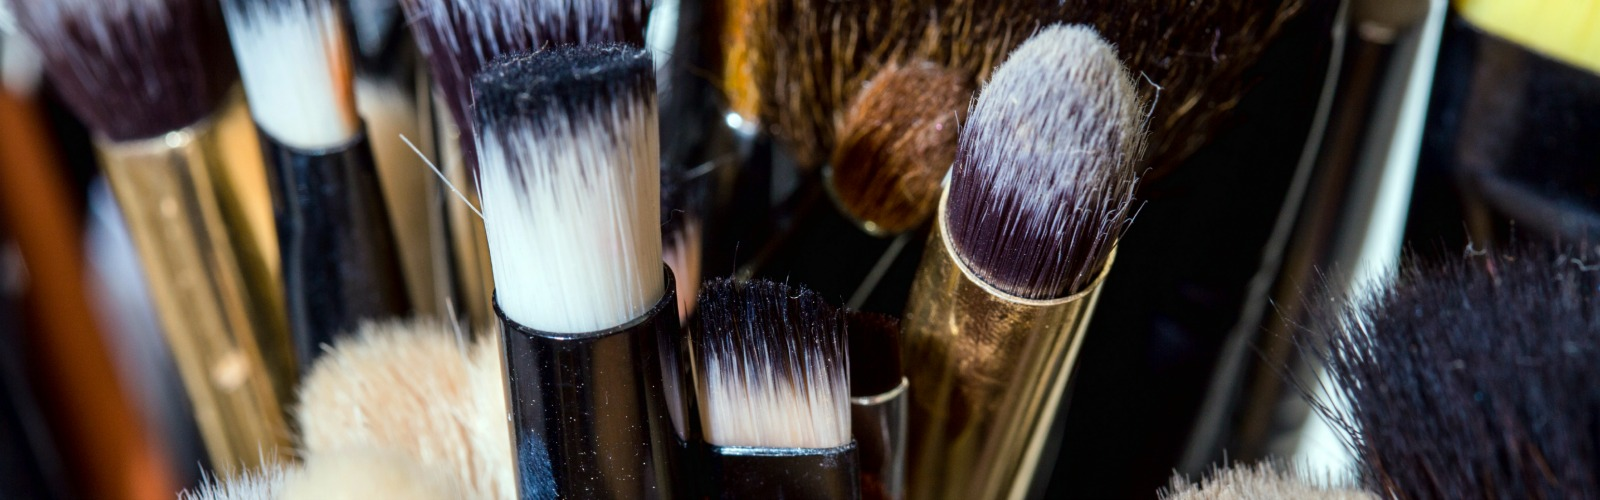 Win At Flawless Skin: Makeup Mistakes and How To Fix Them